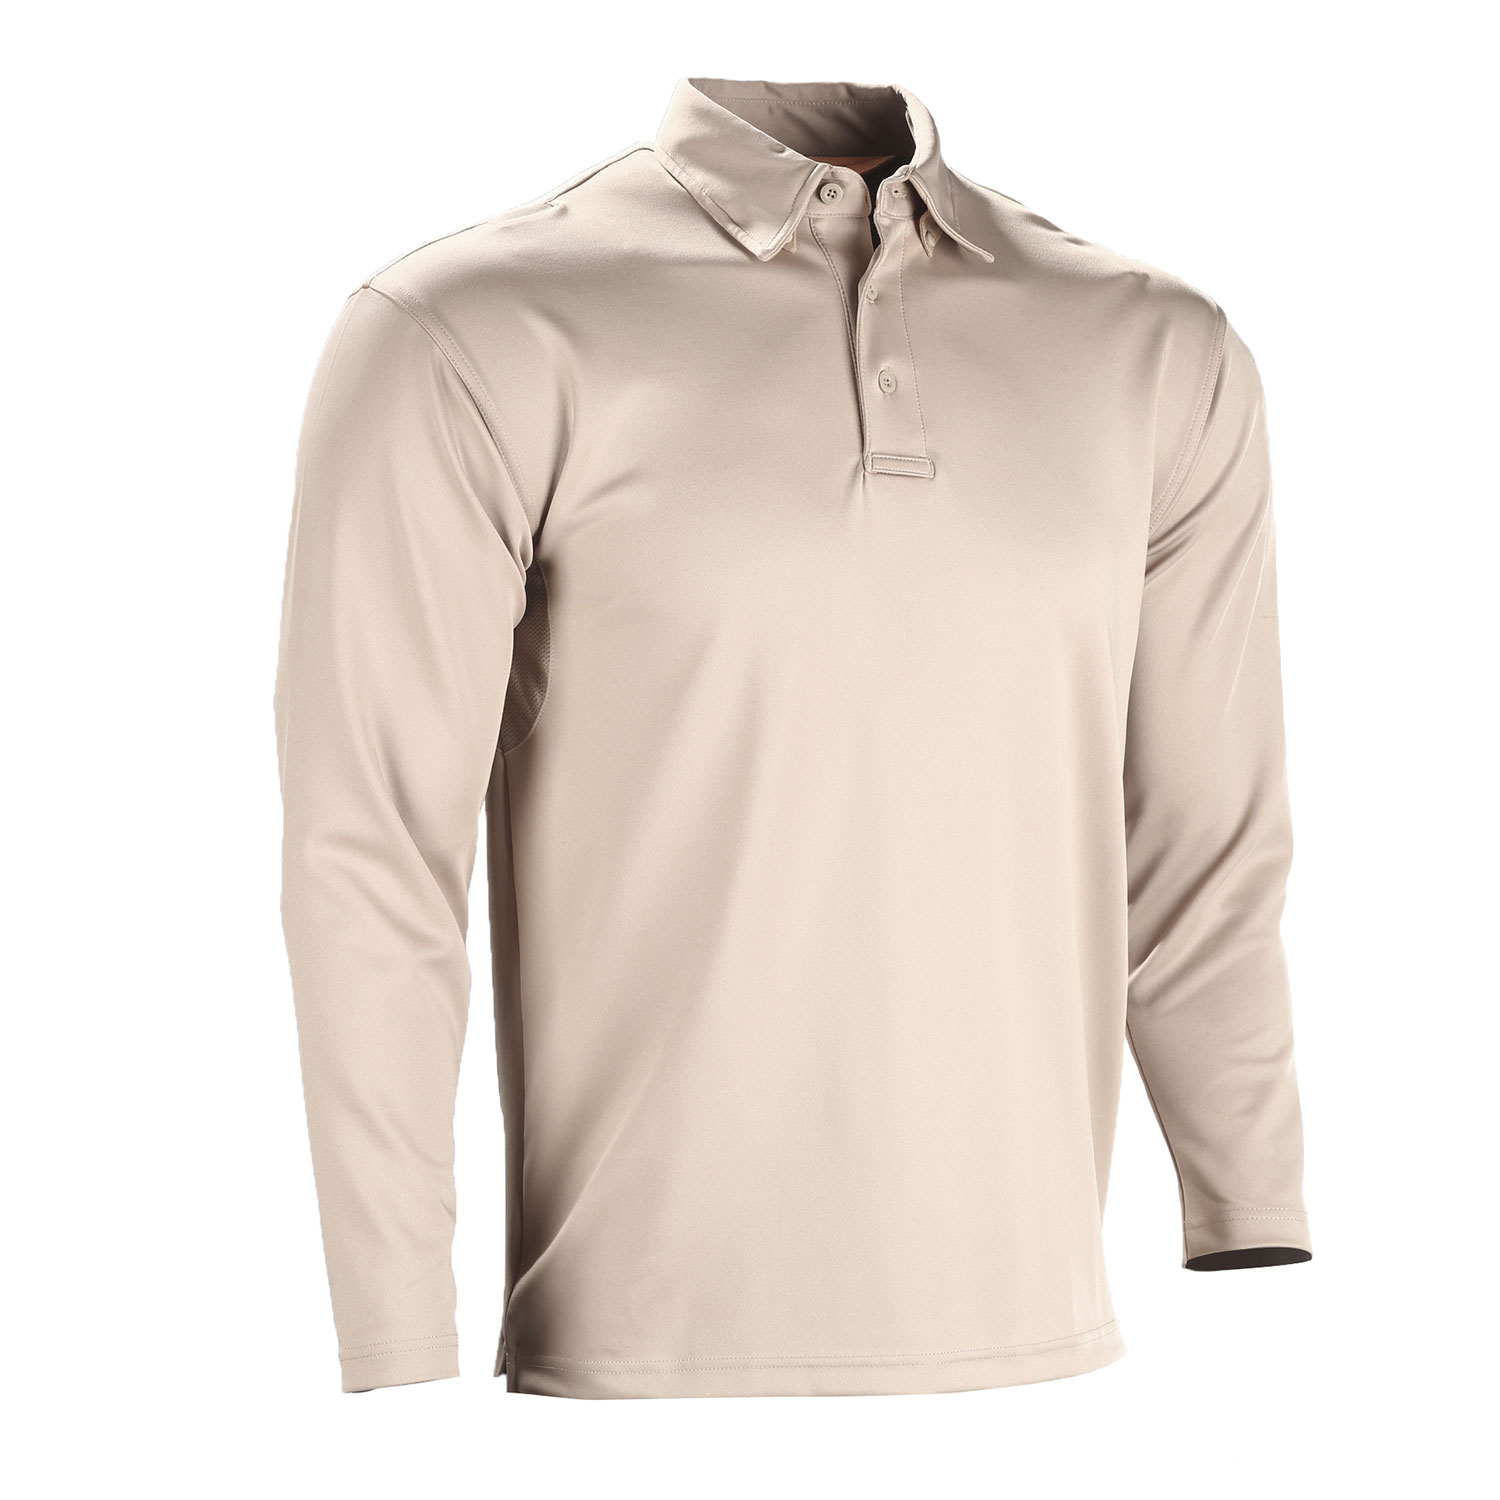 Propper I C E Performance Long Sleeve Polo Shirt